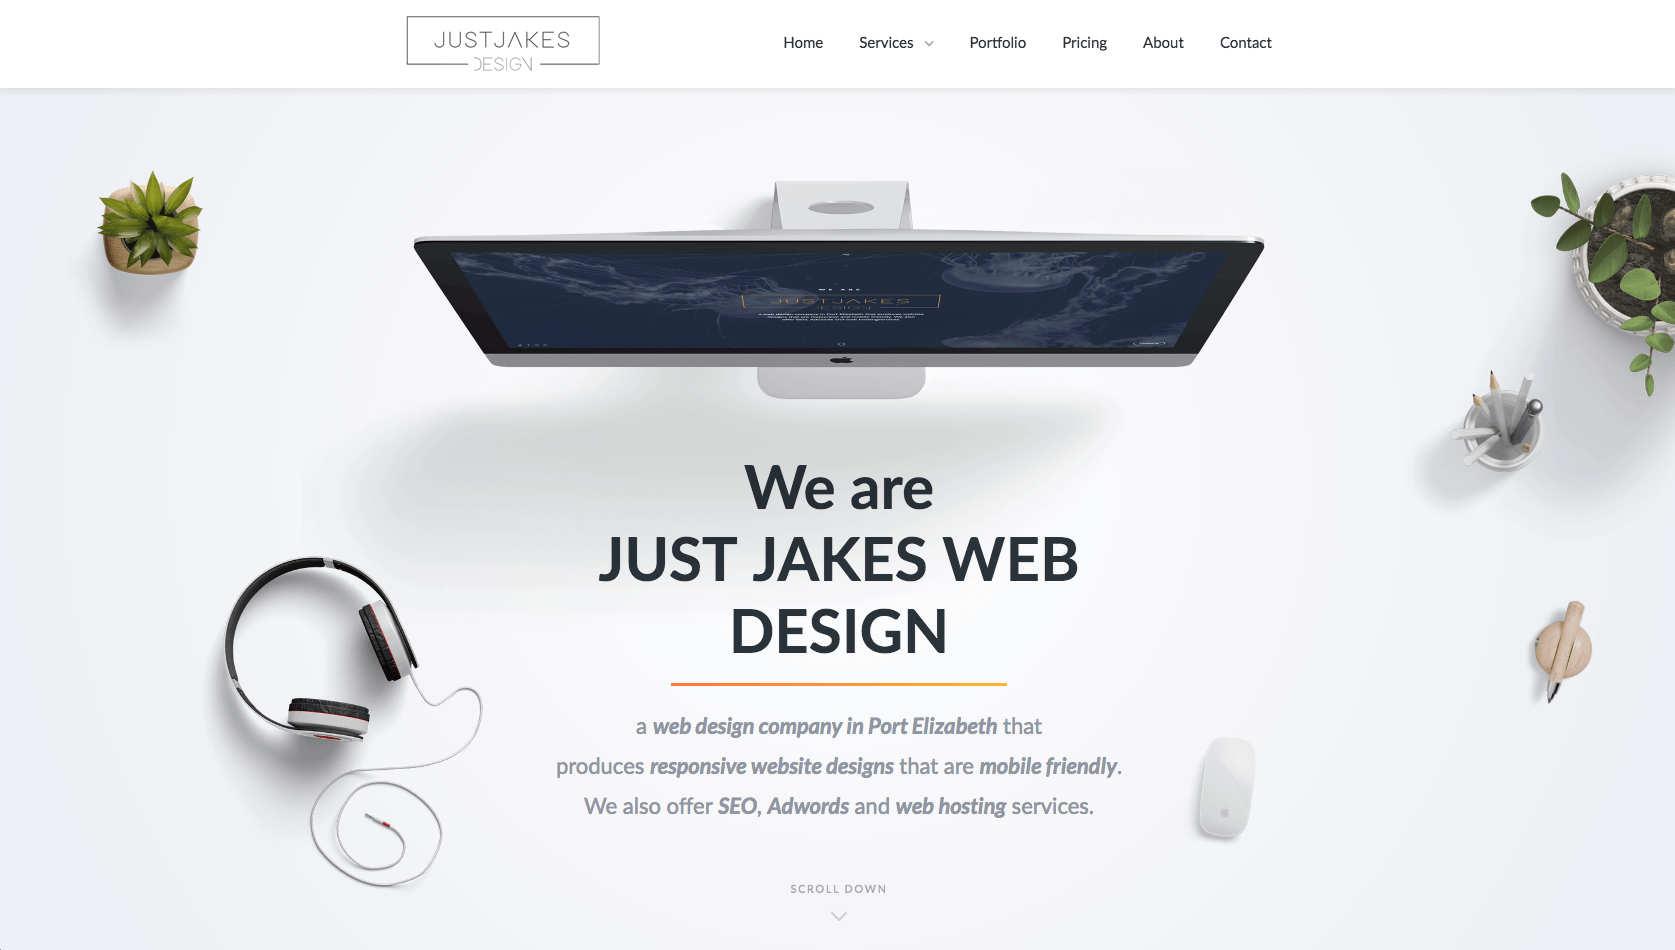 Just Jakes Web Design Home page screenshot